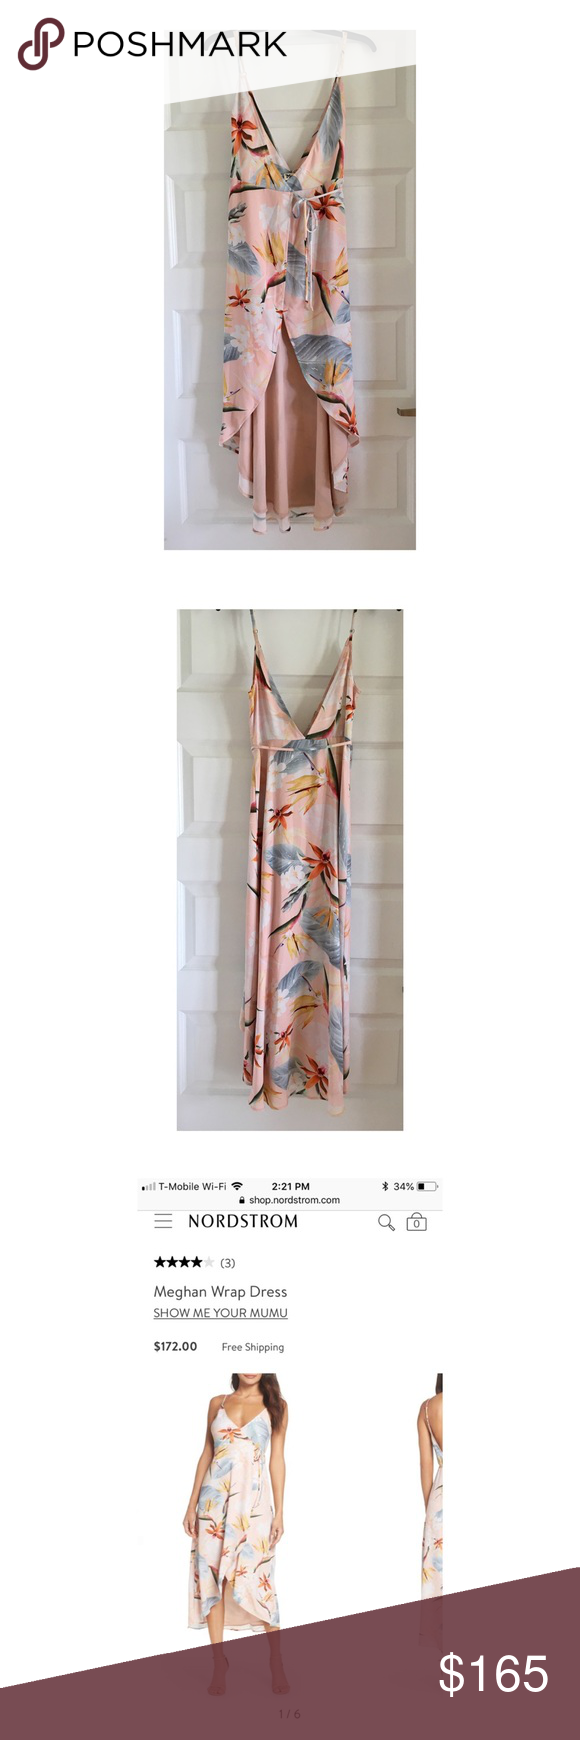 """727407c9d833 Meghan Wrap Dress in Paradise Party 🌺 ✨New✨ """"Show me your MuMu"""" wrap dress!  ✅ Never worn without tags ✅ Protective plastic dry cleaning bag included ..."""